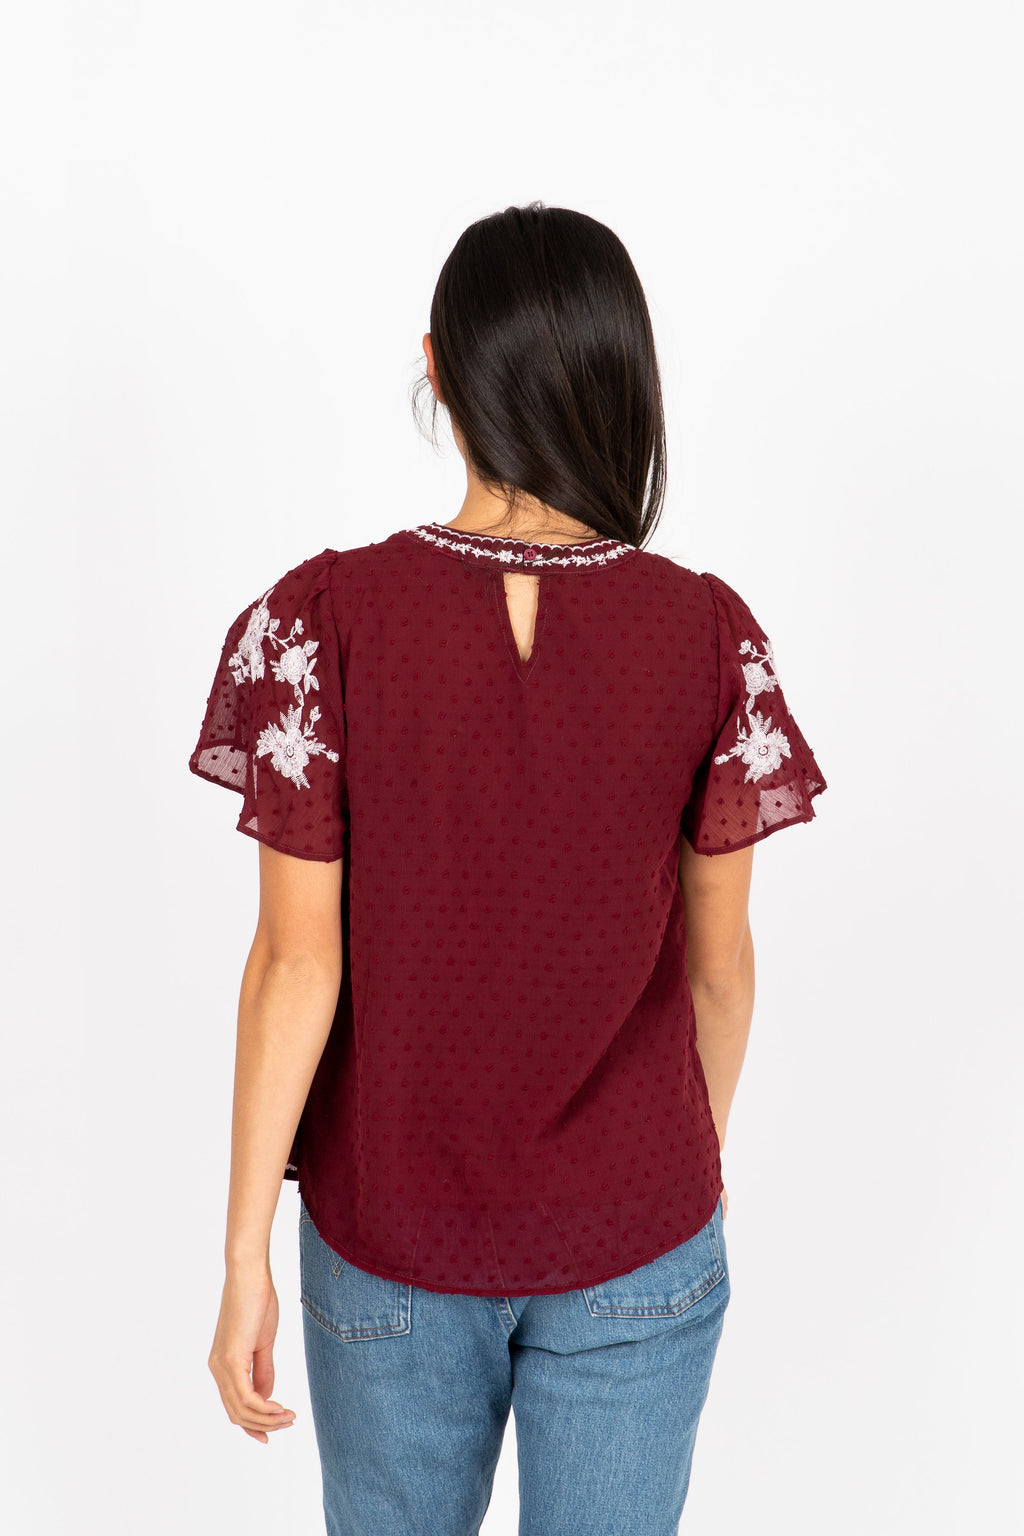 The Fixate Embroidered Swiss Dot Blouse in Burgundy- studio shoot; back view